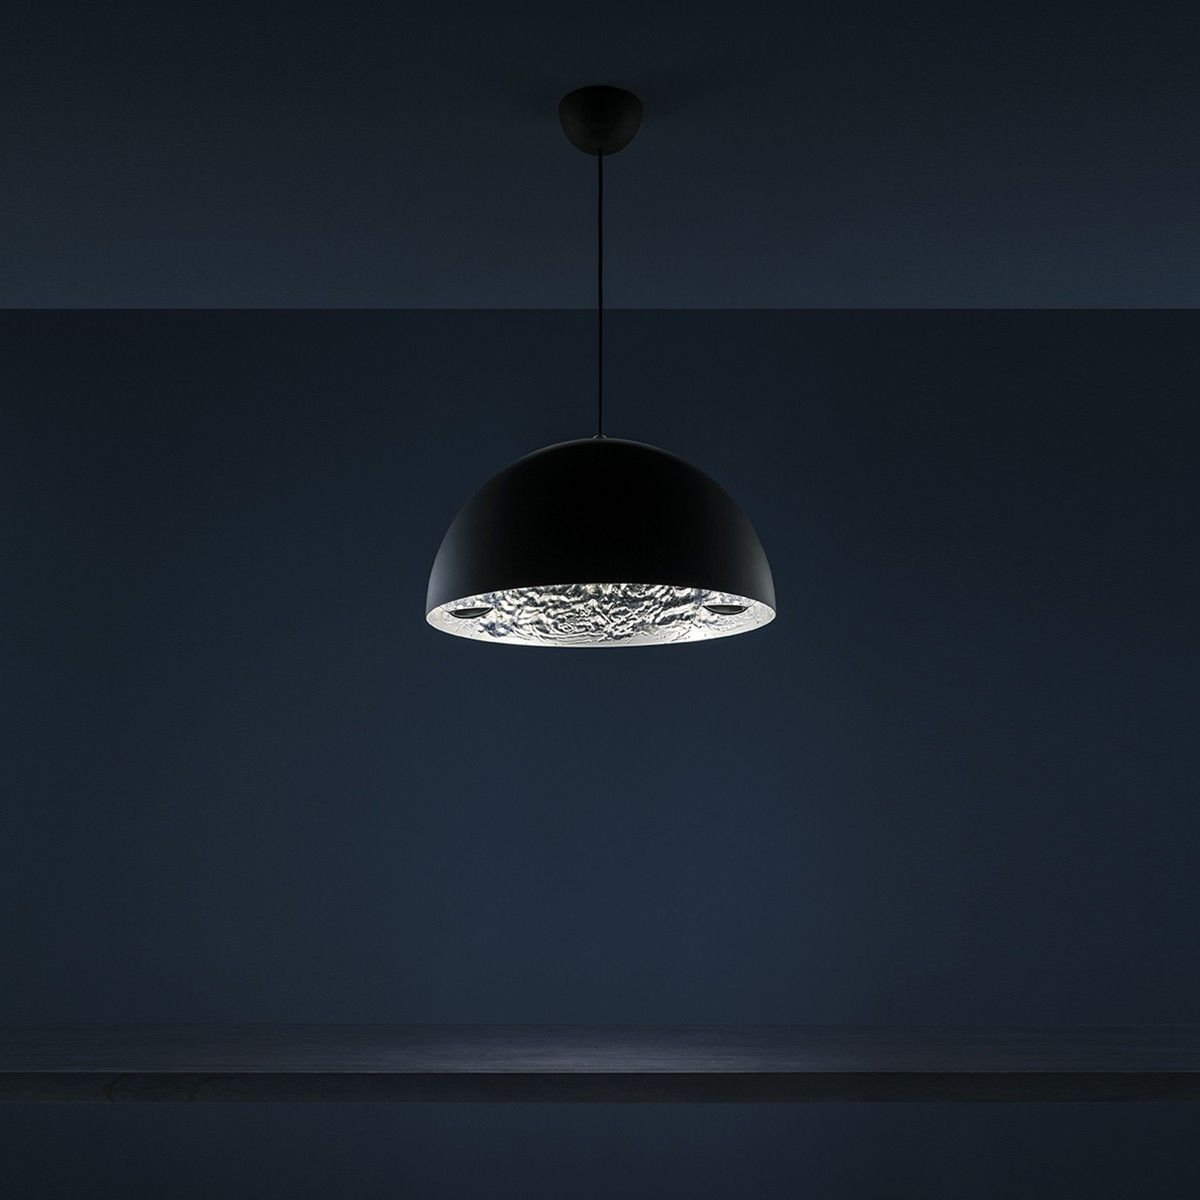 Catellani Smith Stchu Moon 02 Led Pendelleuchte O 40 Cm Schwarz Silber Led Stehlampe Lampen Landhausstil Pendelleuchte